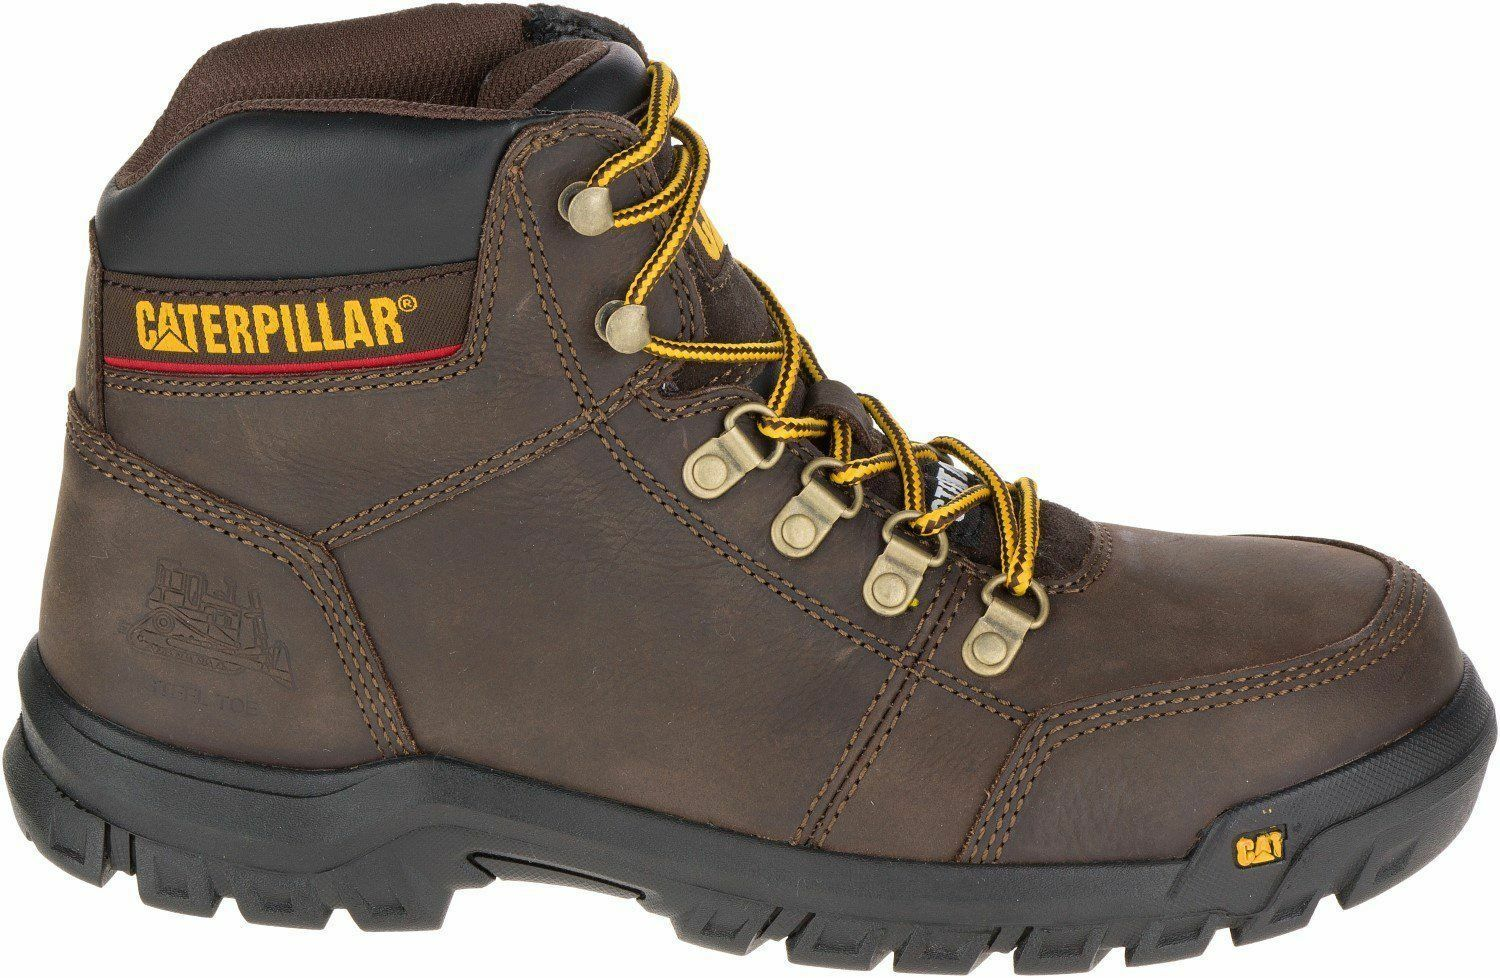 Caterpillar Brand New Uomo - P74087 Outline--Soft Toe- Seal Brown